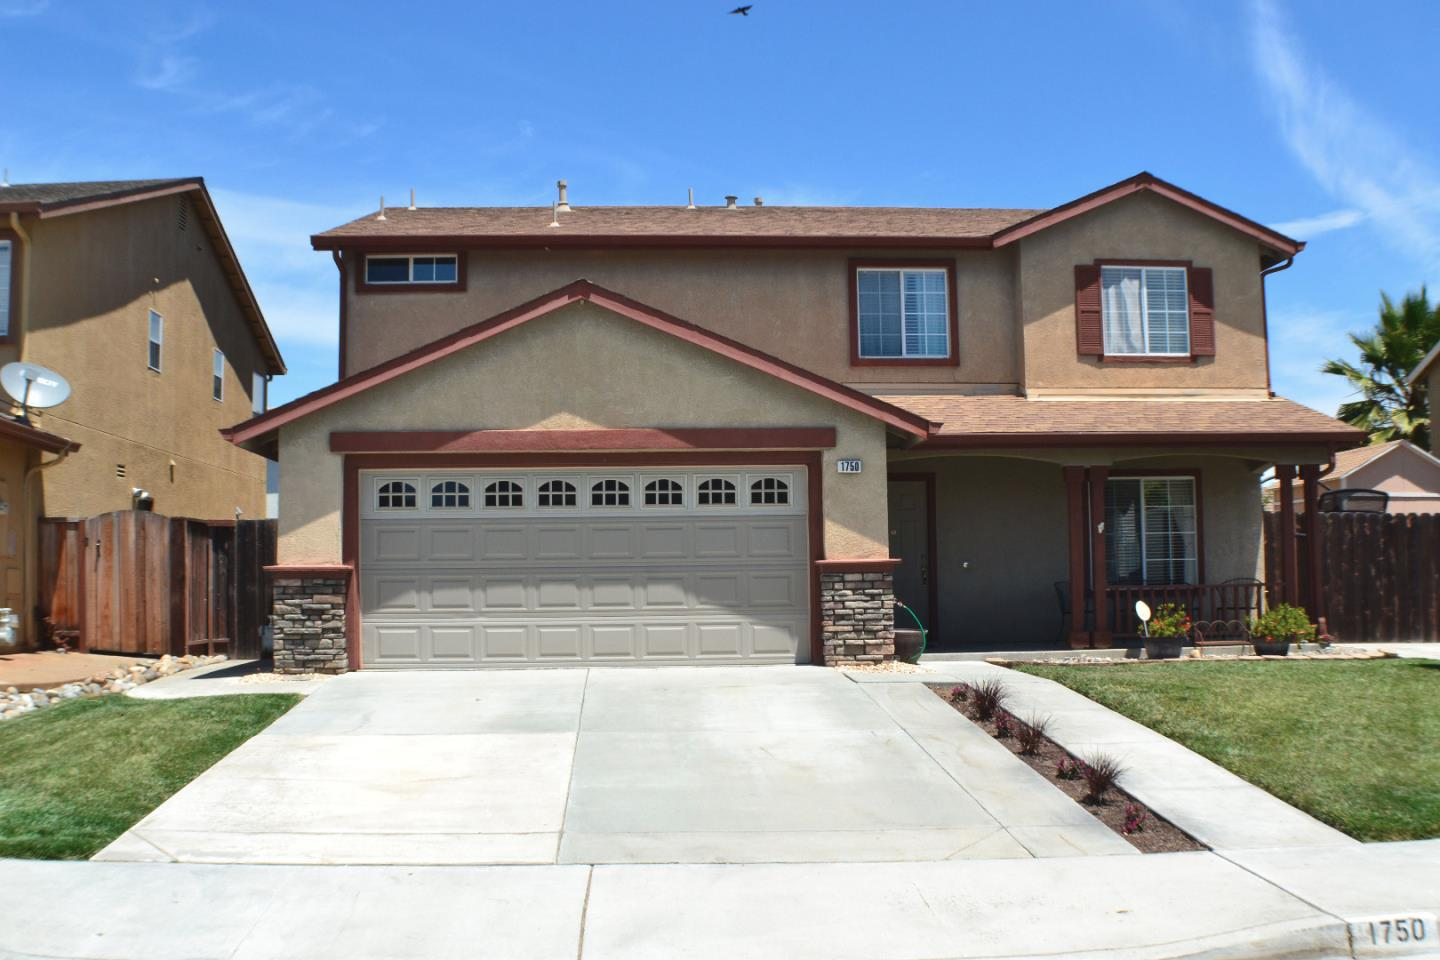 Detail Gallery Image 1 of 21 For 1750 Brighton Dr, Hollister, CA 95023 - 4 Beds | 2/1 Baths